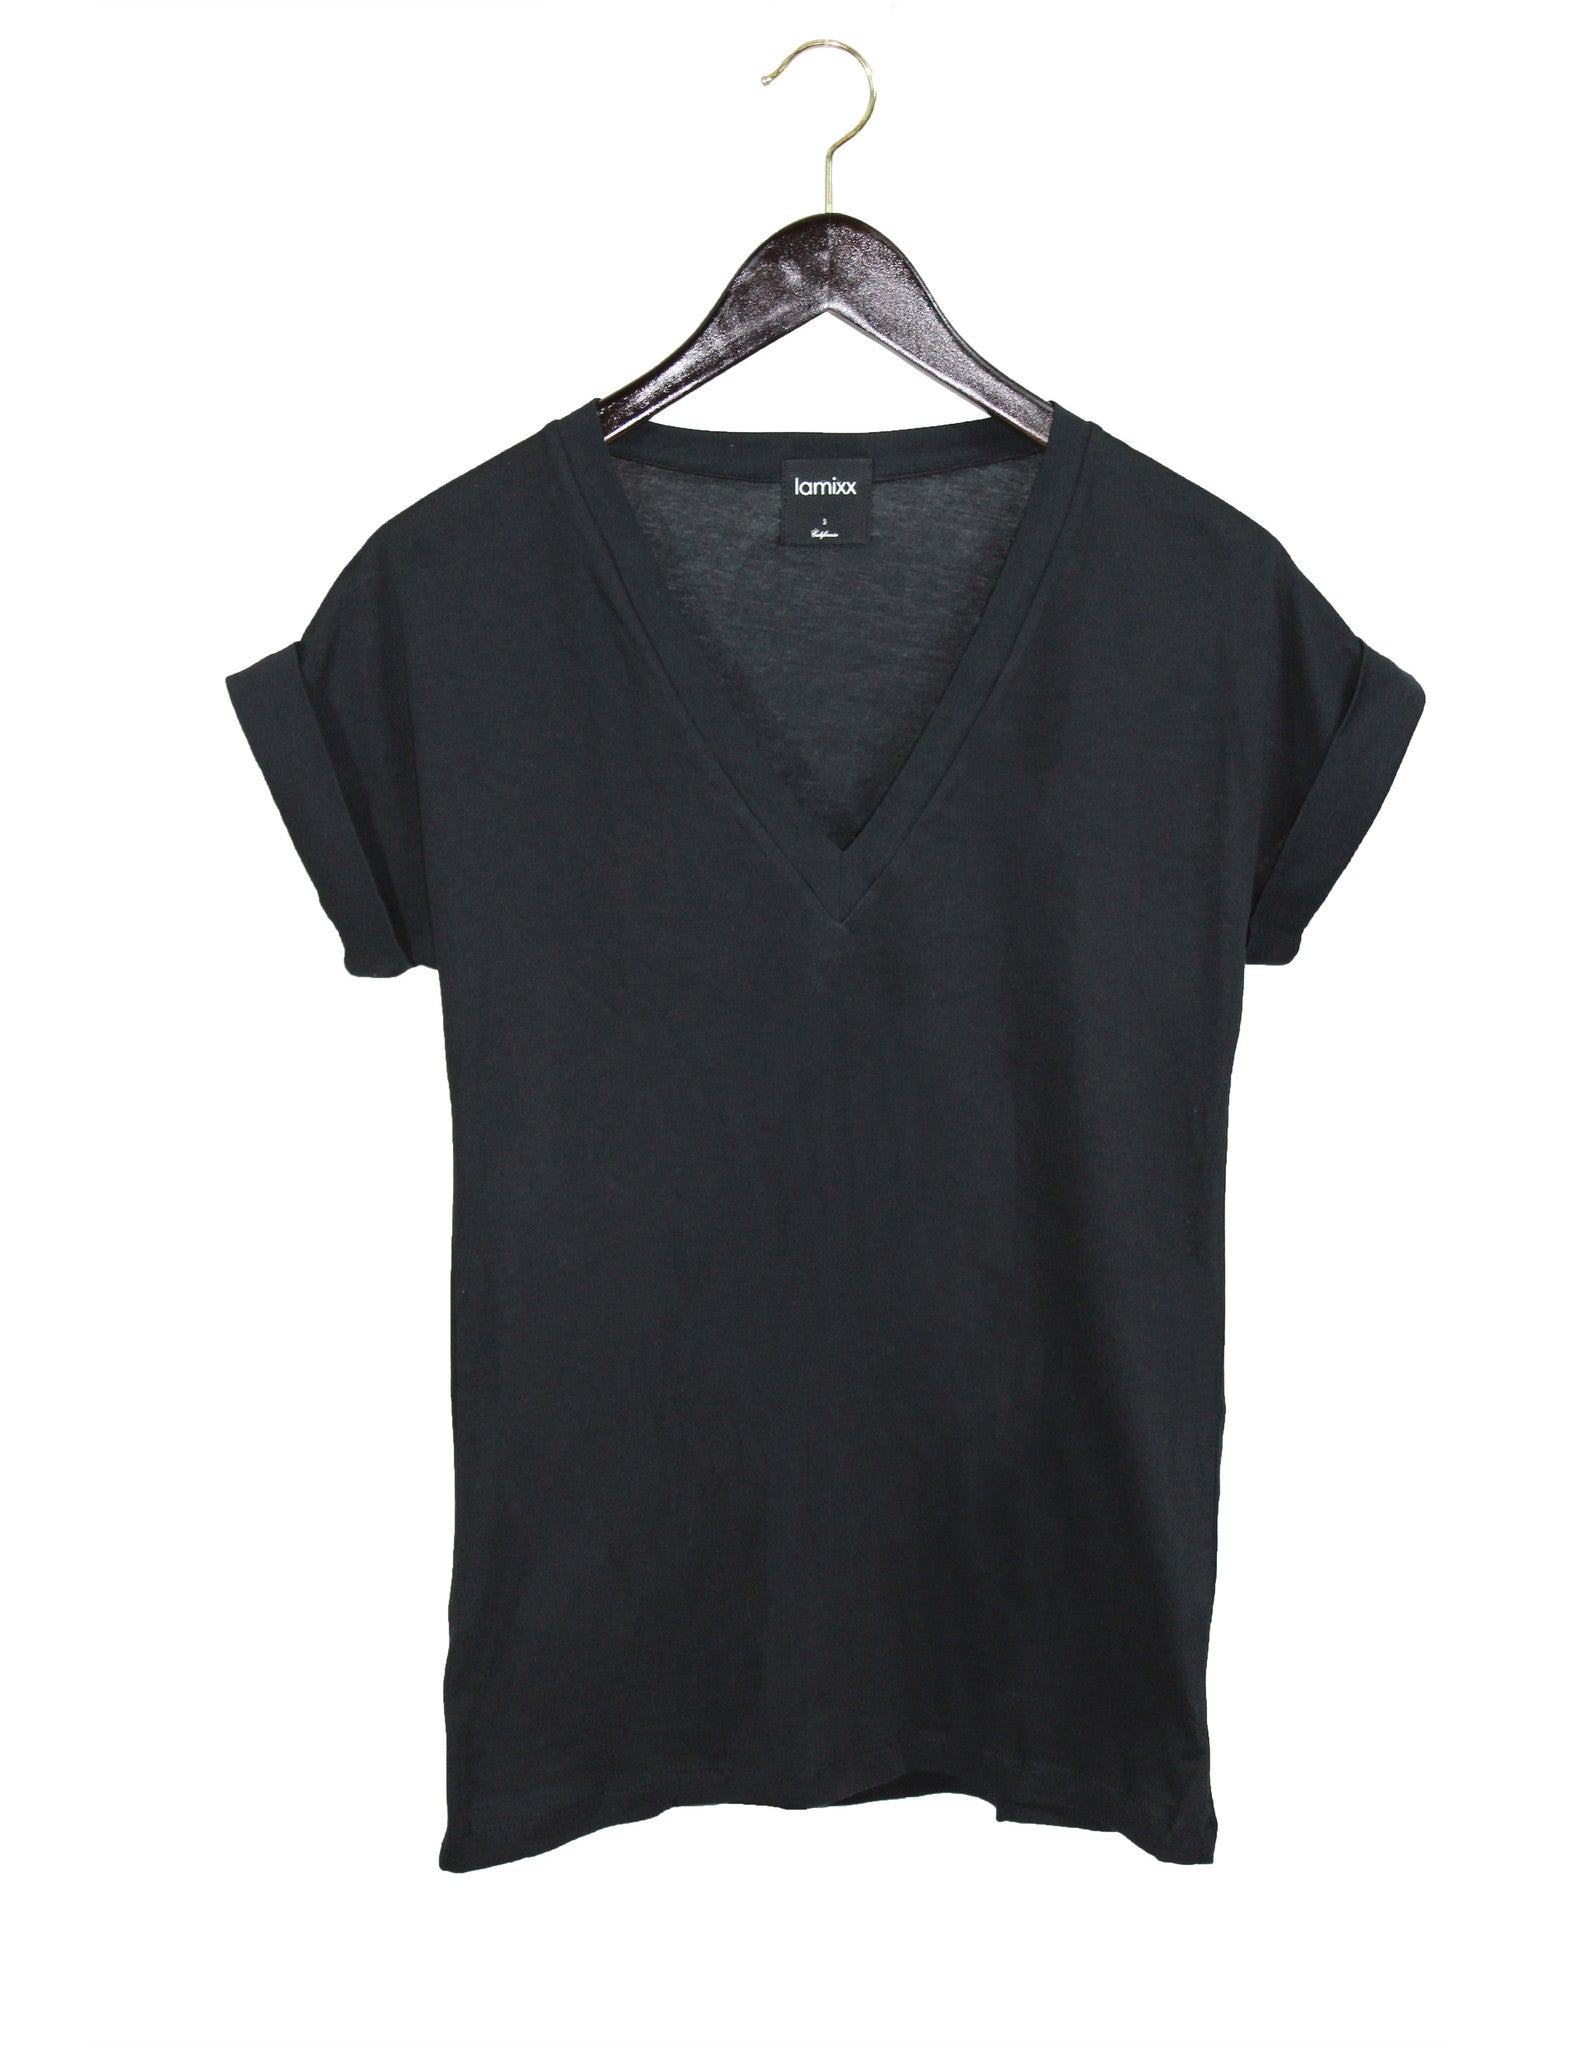 Perfect Black V-Neck Tee / Ethical Fashion